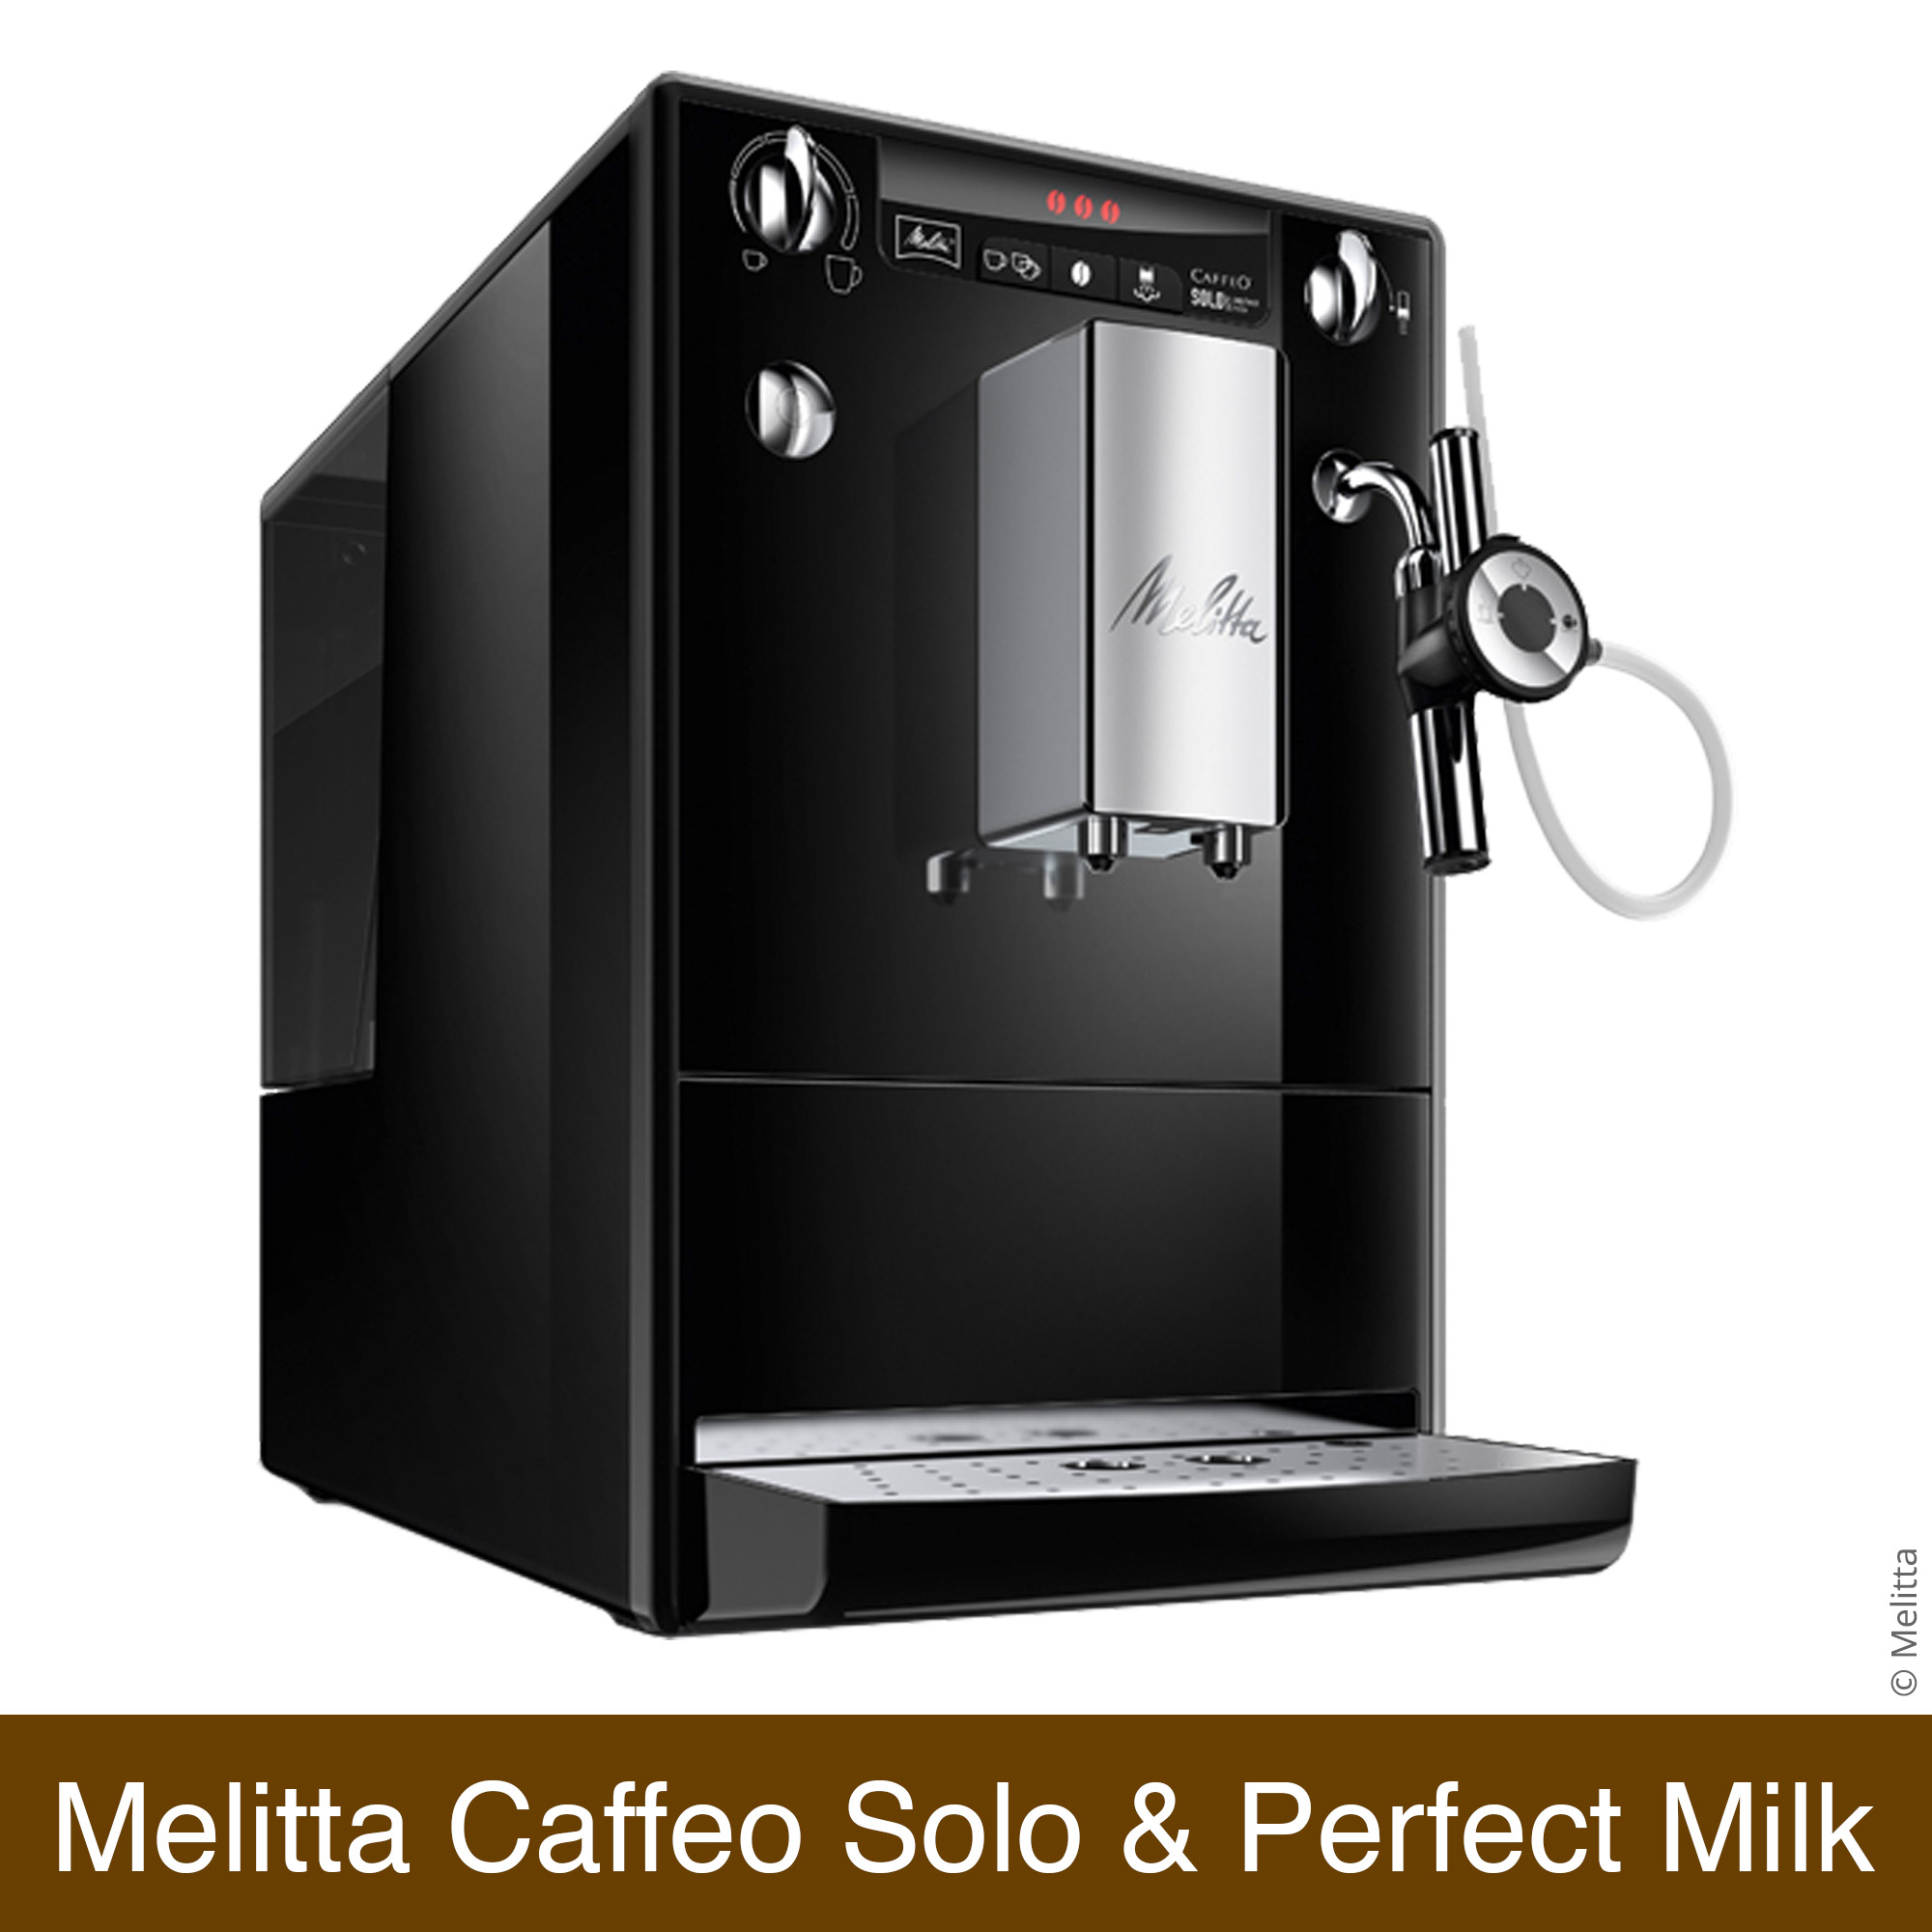 melitta caffeo solo und perfect milk e 957 101 vergleich. Black Bedroom Furniture Sets. Home Design Ideas